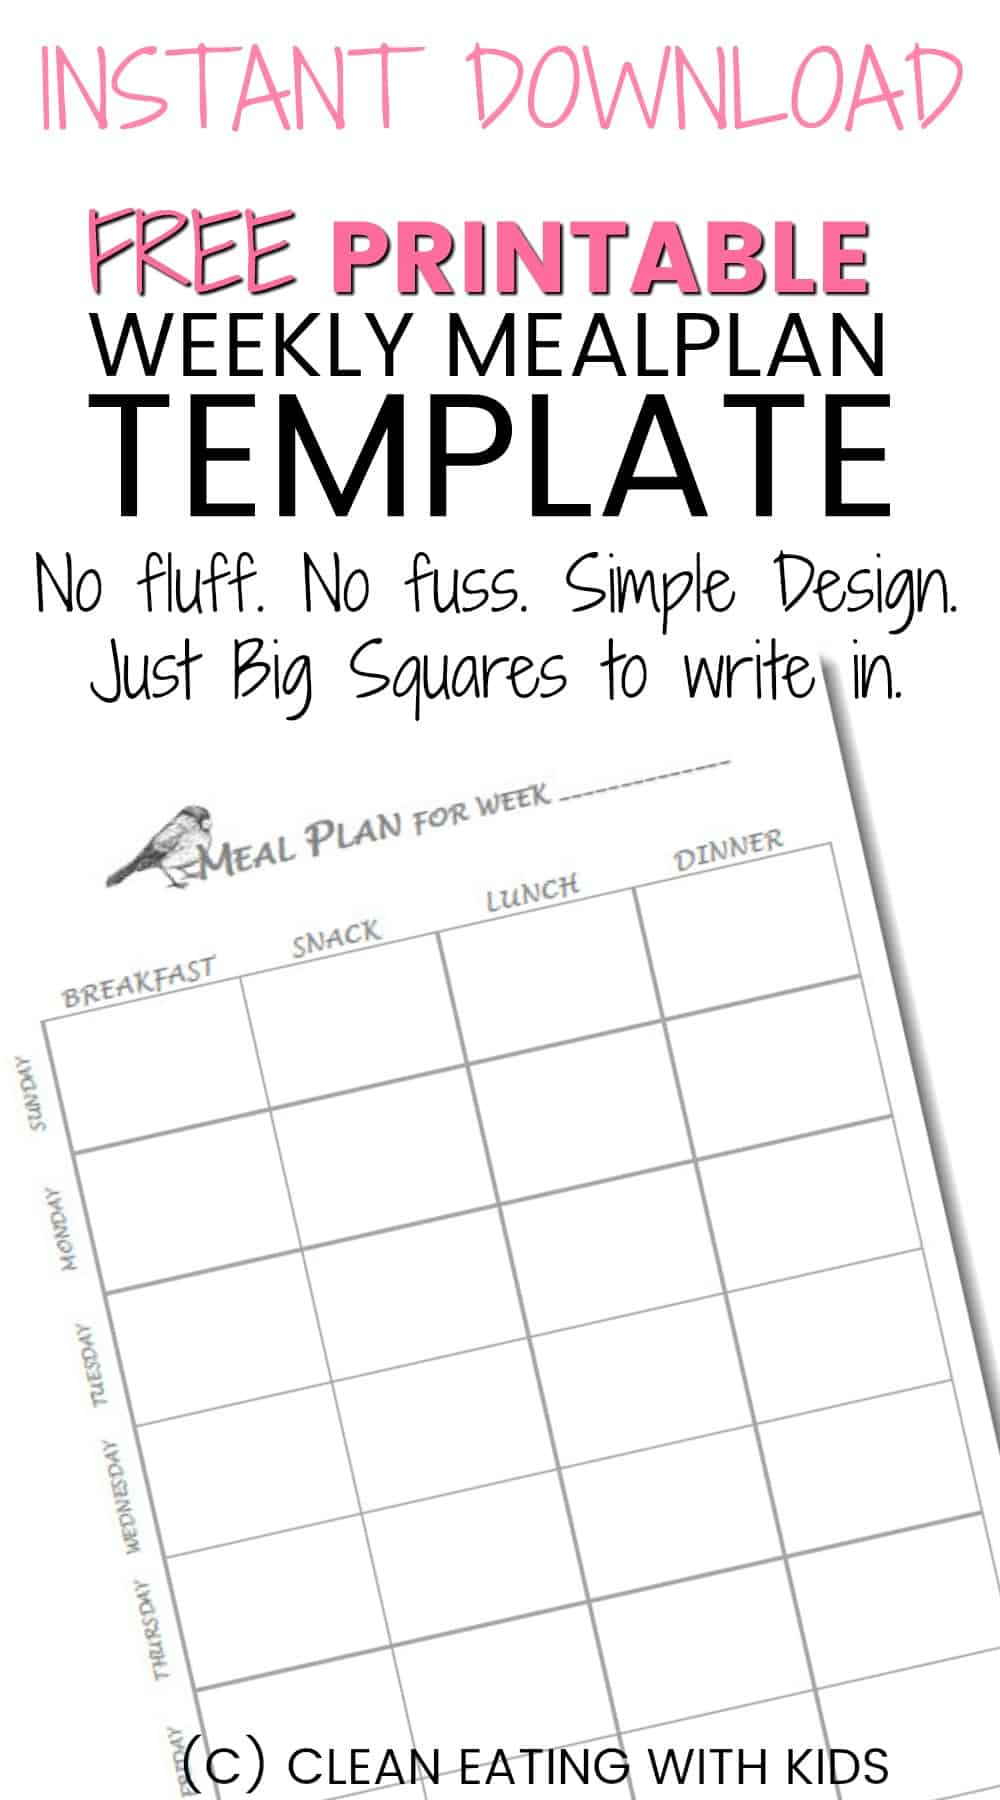 picture about Free Printable Meal Planner Template referred to as Totally free Printable Weekly Evening meal System Template - New Having with